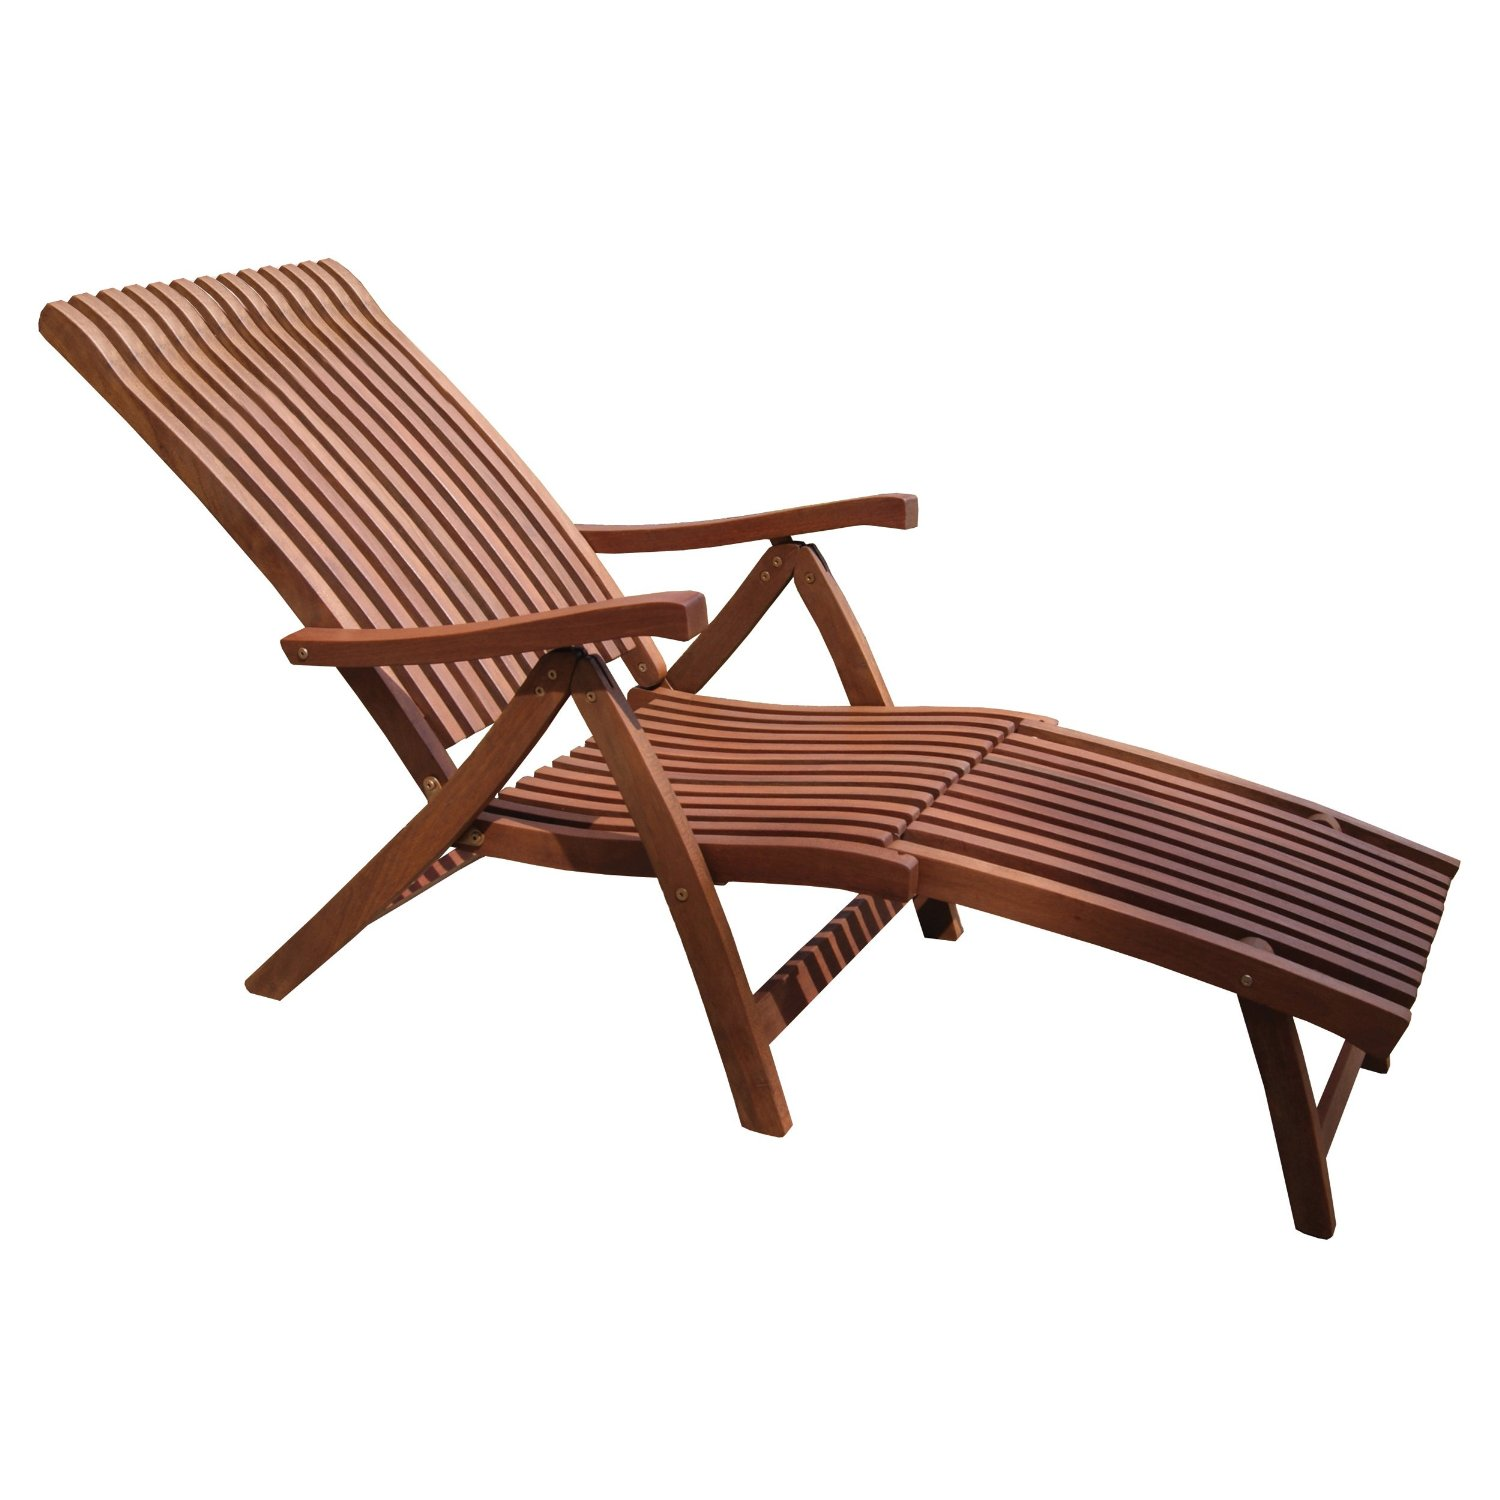 Best outdoor lounge chair ever